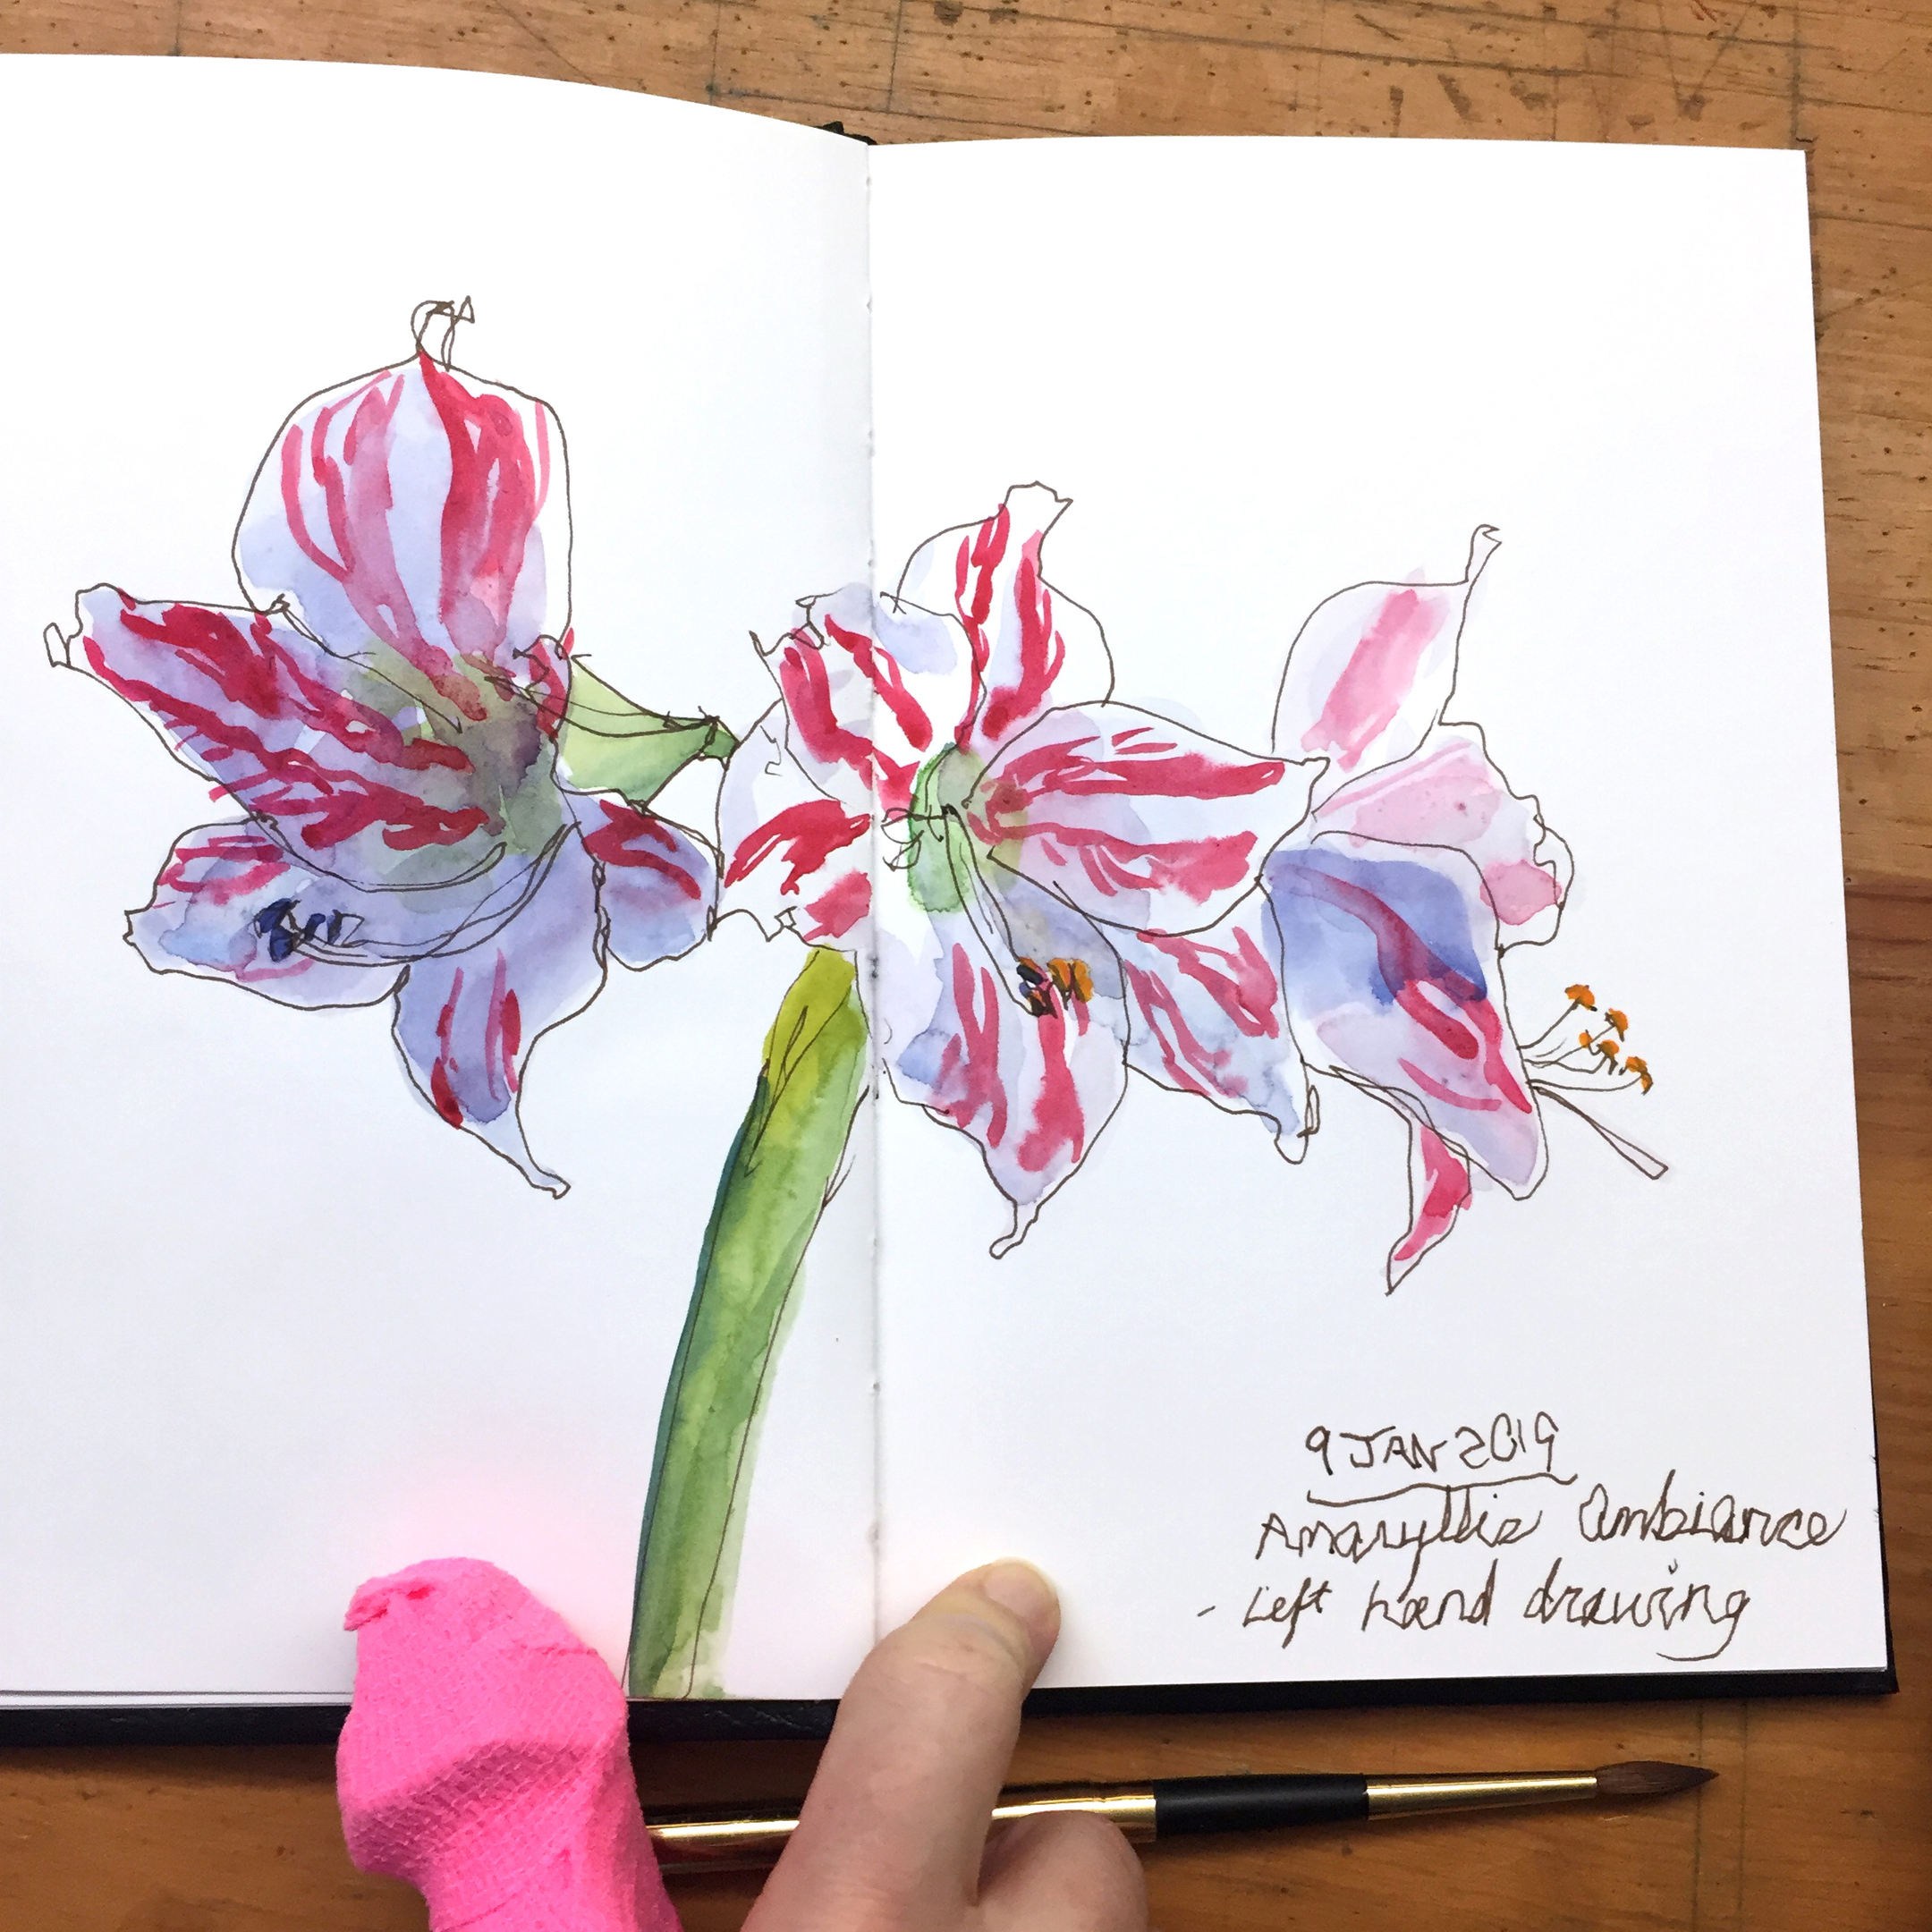 Day 9: Watercolor sketch of Amaryllis Ambiance using my left hand.